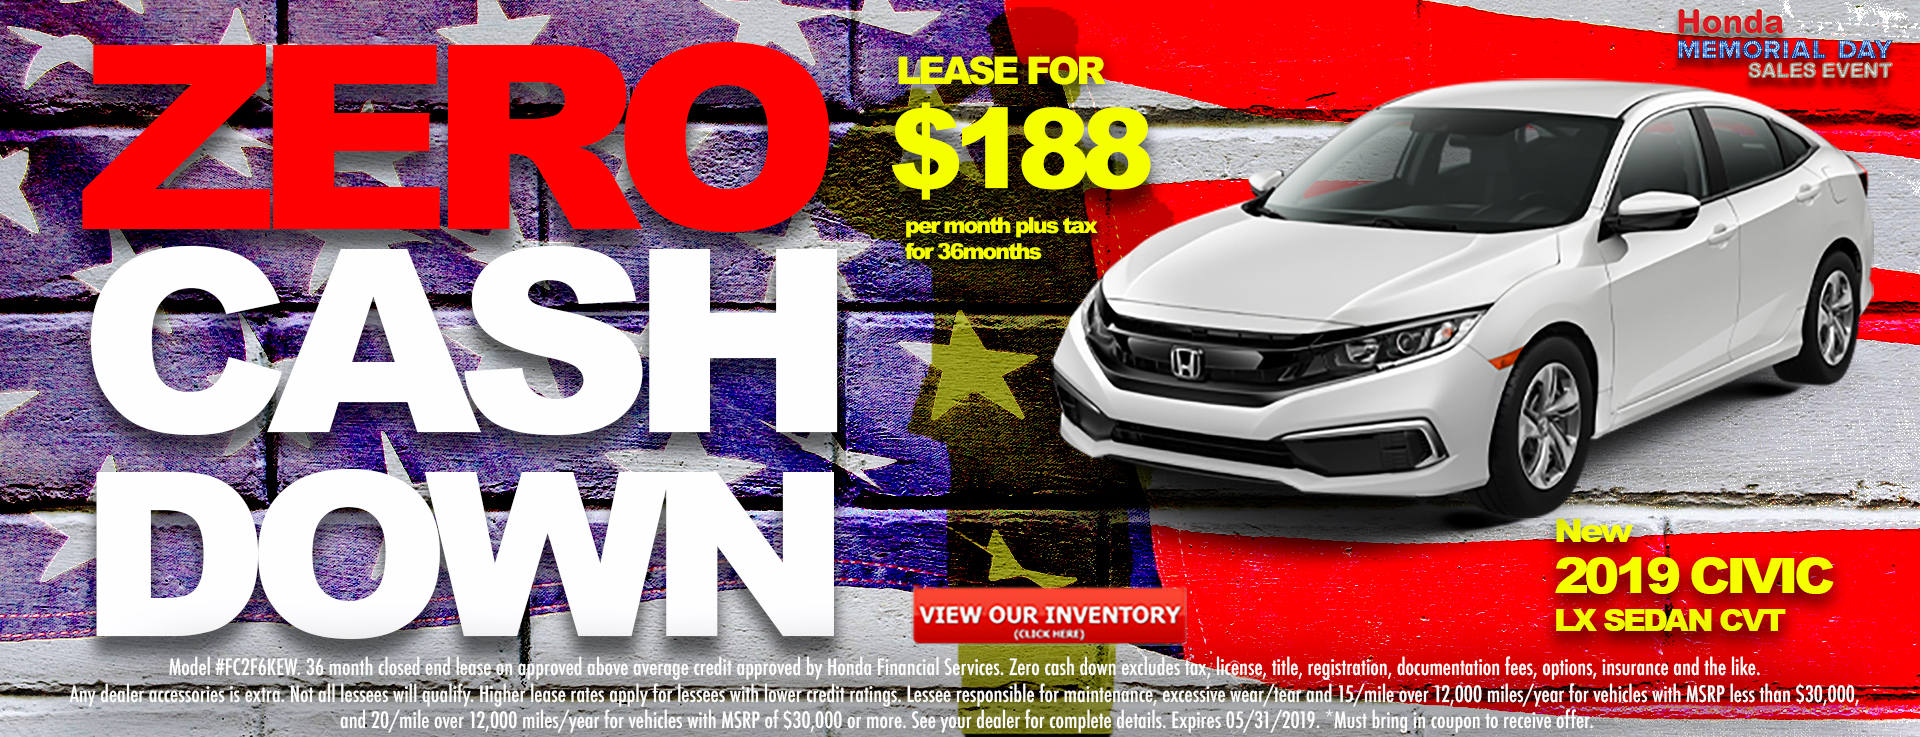 Honda Civic Sedan $188 Lease